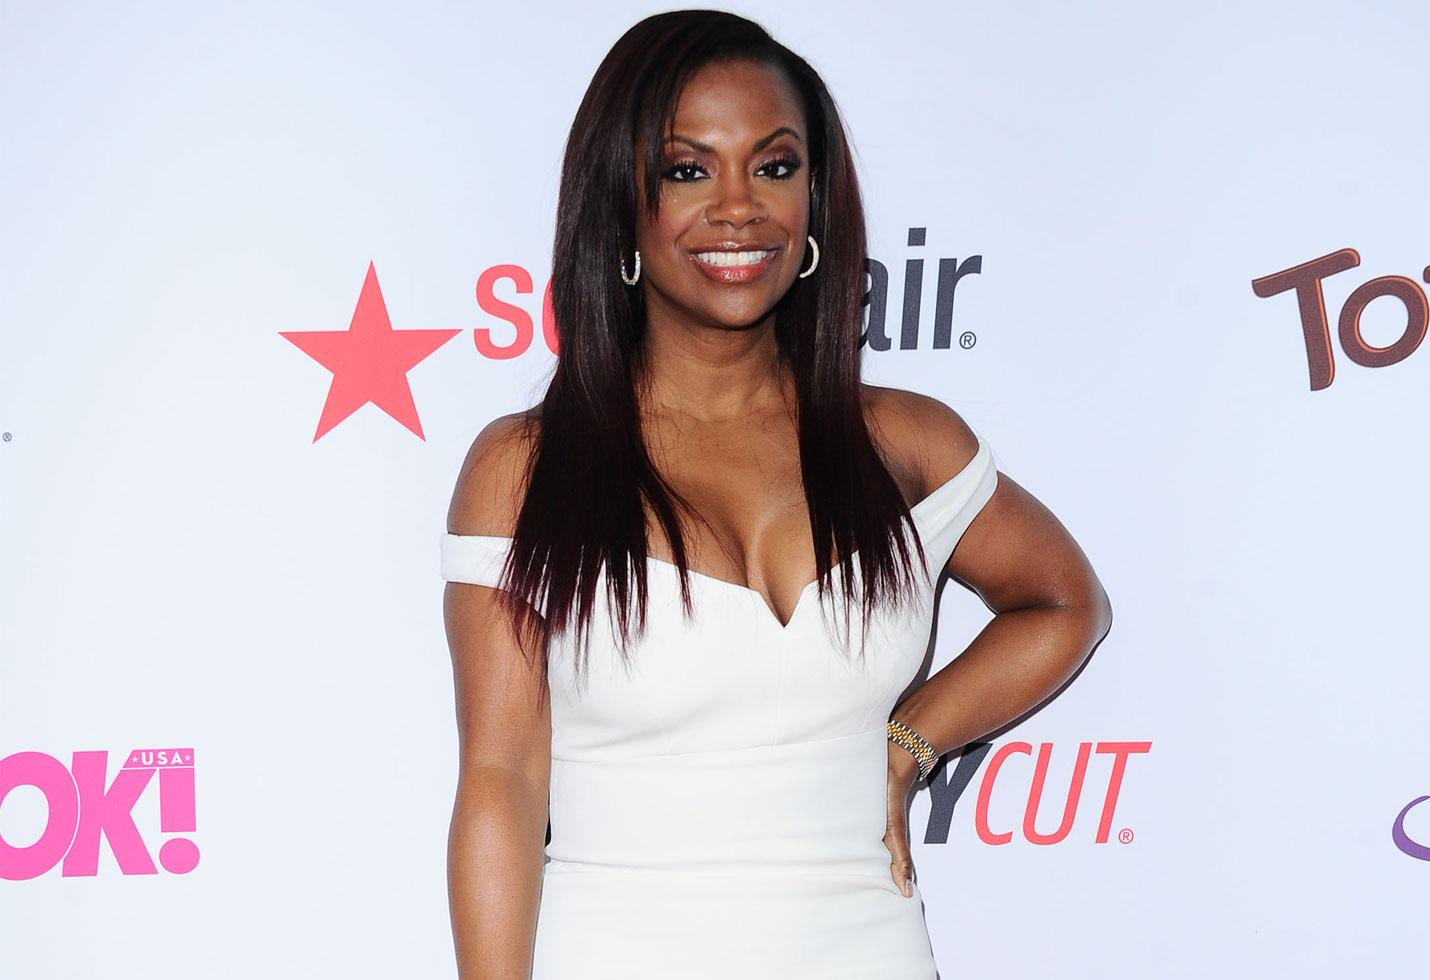 Kandi Burruss Celebrates The Birthday Of Her Goddaughter, Caitlyn - See The Sweet Photo And Message